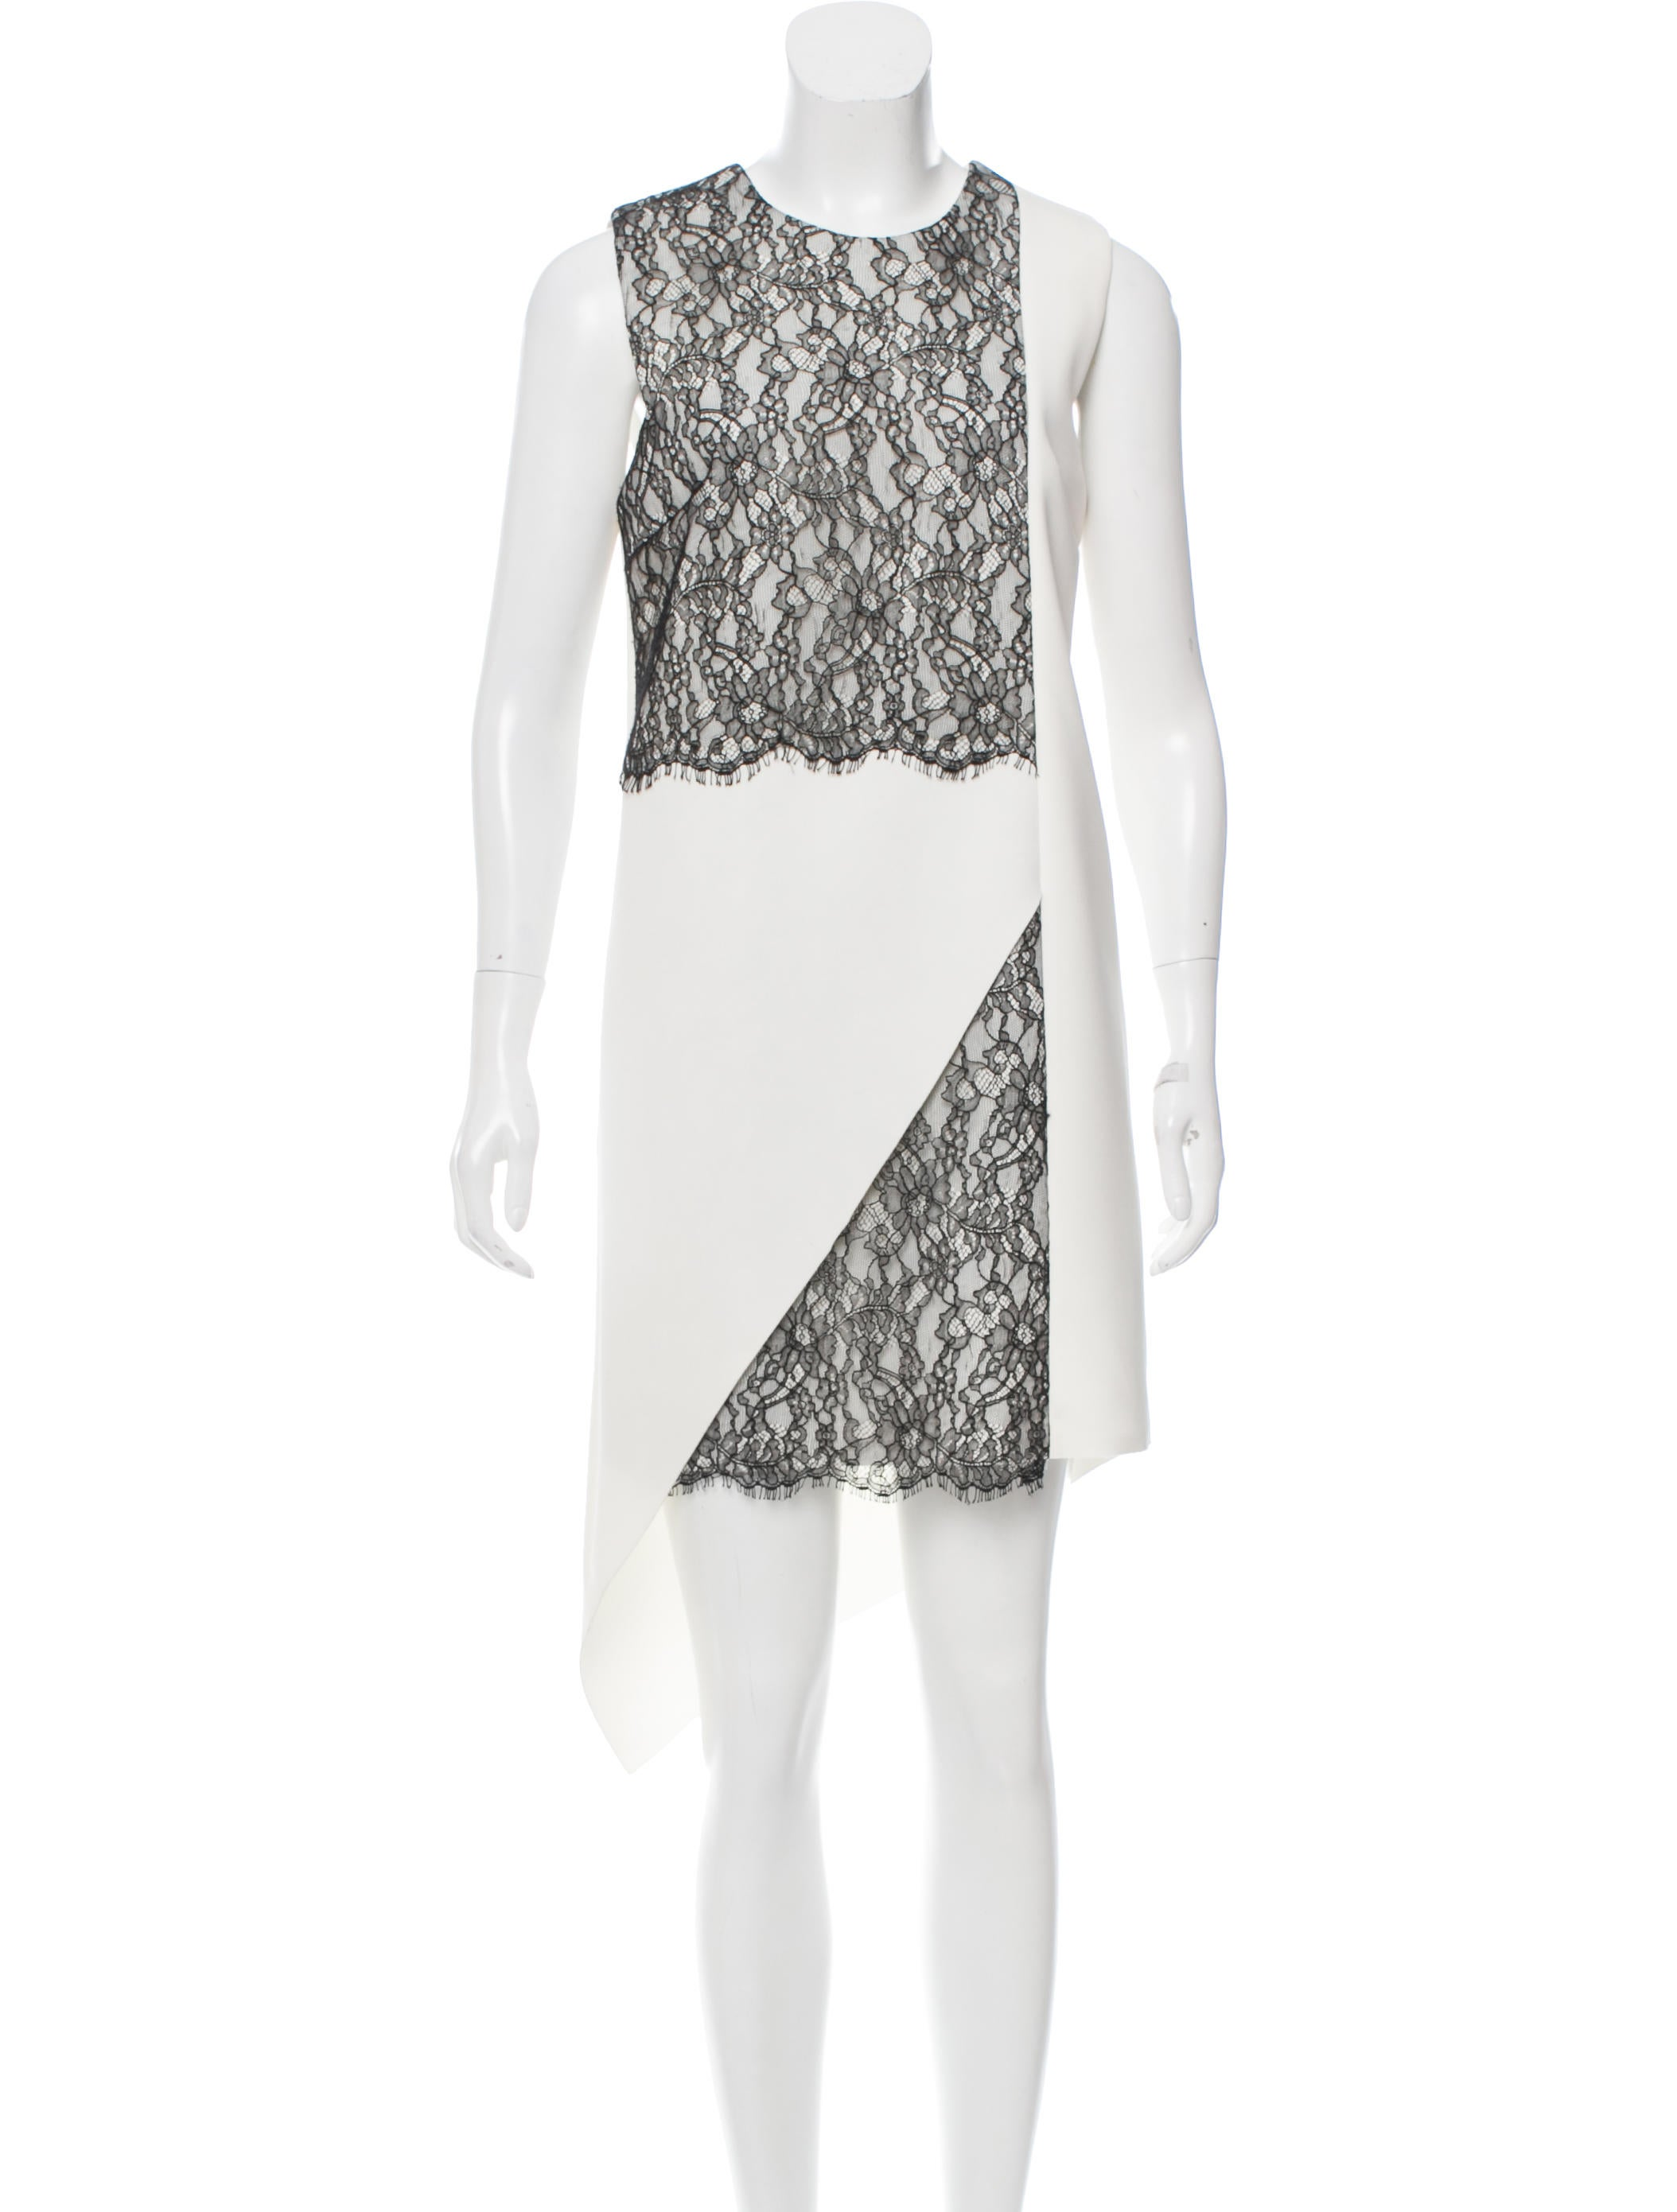 82012e0ac88 Robert Rodriguez Lace-Paneled Asymmetrical Dress w  Tags - Clothing ...